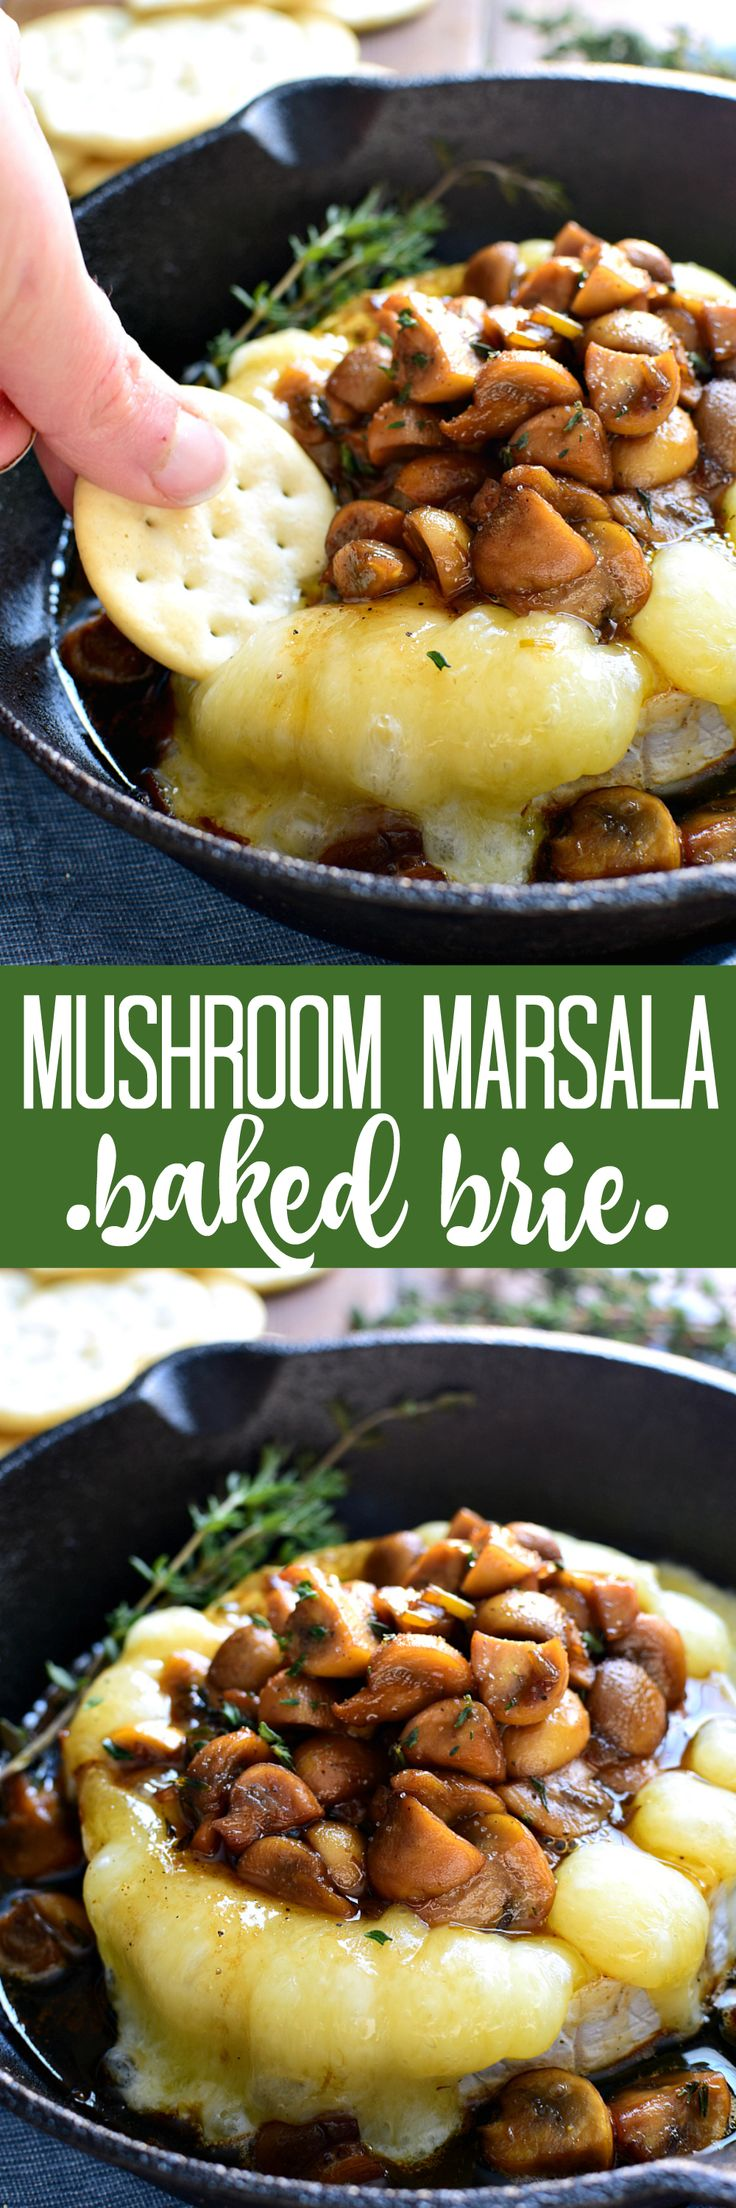 This Mushroom Marsala Baked Brie combines rich marsala-glazed mushrooms with creamy baked brie in a delicious appetizer that's perfect for New Years Eve or anytime!